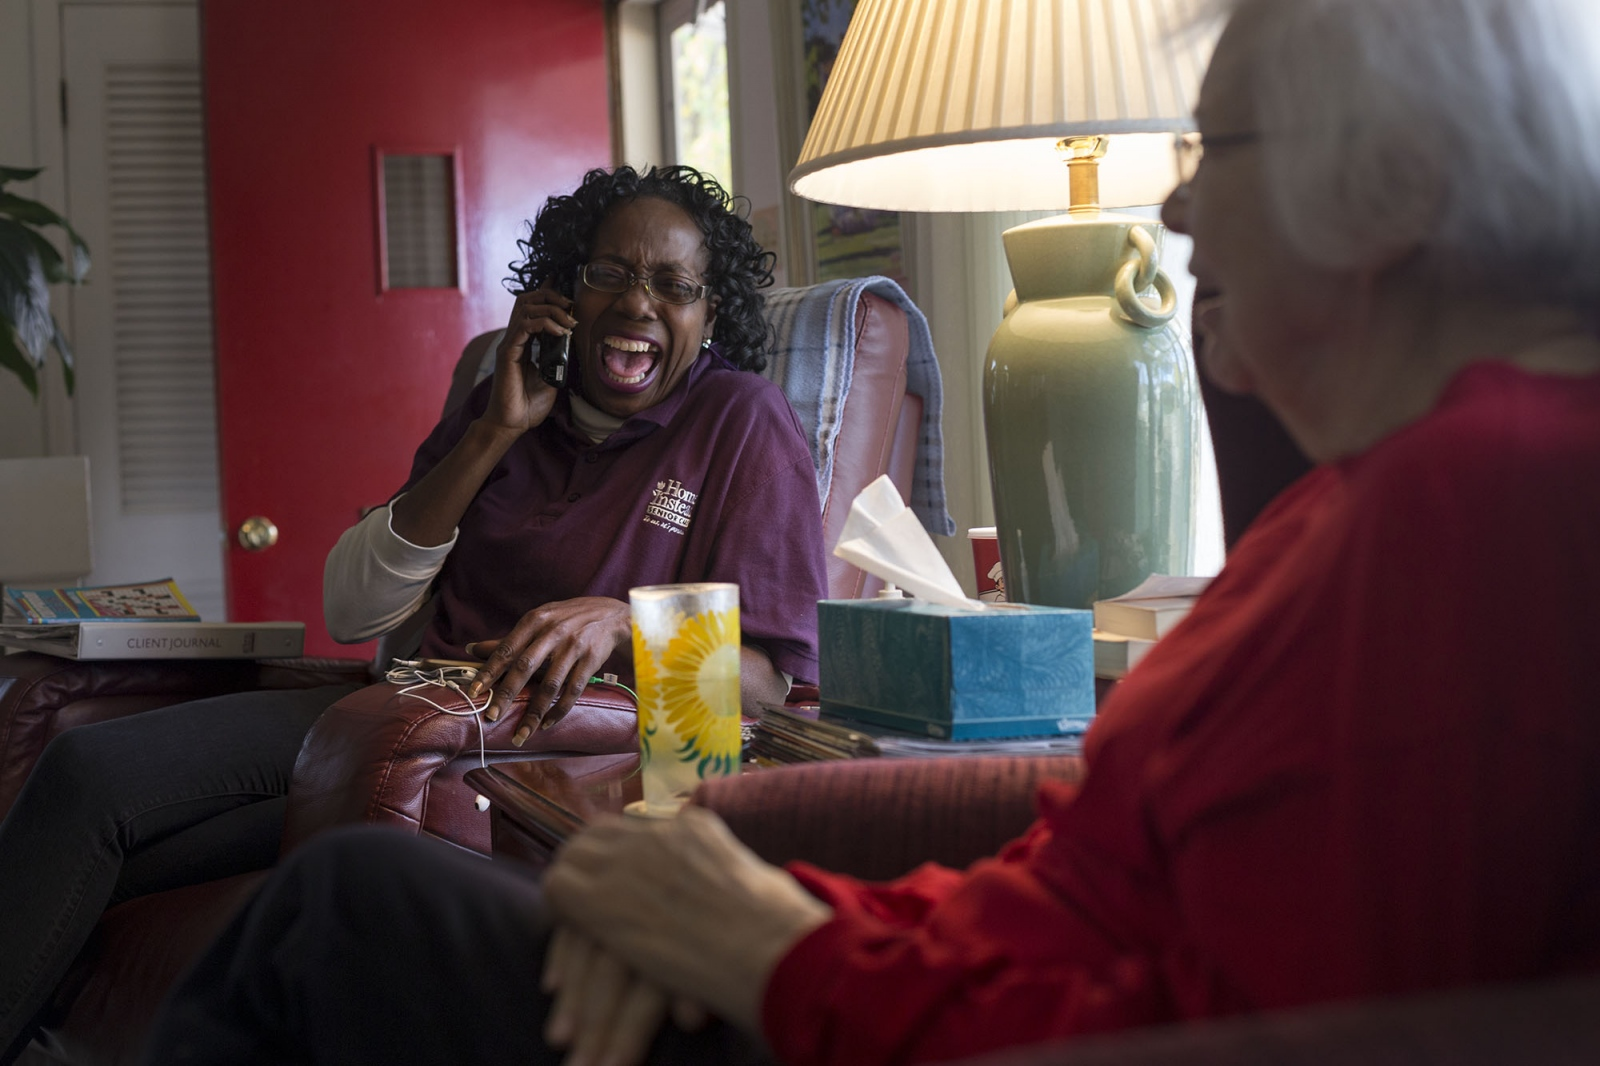 Jackie Lloyd, left, laughs over the phone while Lois Jones watches television on Wednesday afternoon, Nov. 9 at her home in Royal Oak, Mi. Lloyd has been working with Jones a little over two years as a caretaker with Home Instead Senior Care.